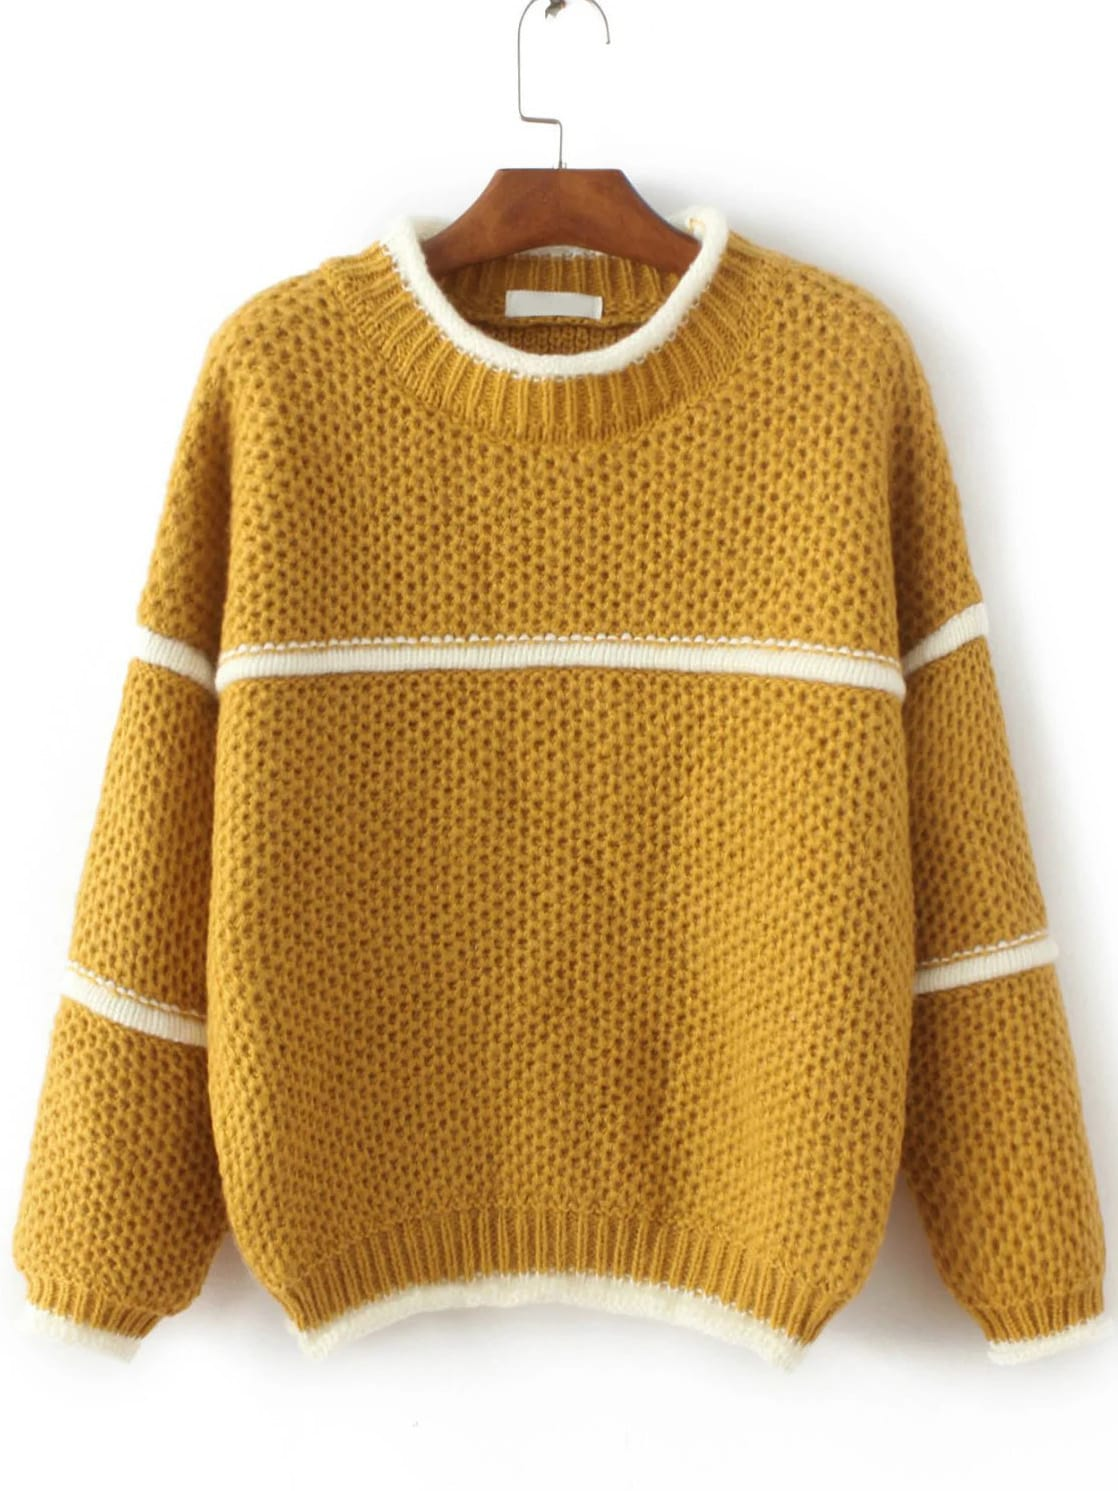 Yellow Contrast Trim Crew Neck SweaterYellow Contrast Trim Crew Neck Sweater<br><br>color: Yellow<br>size: one-size